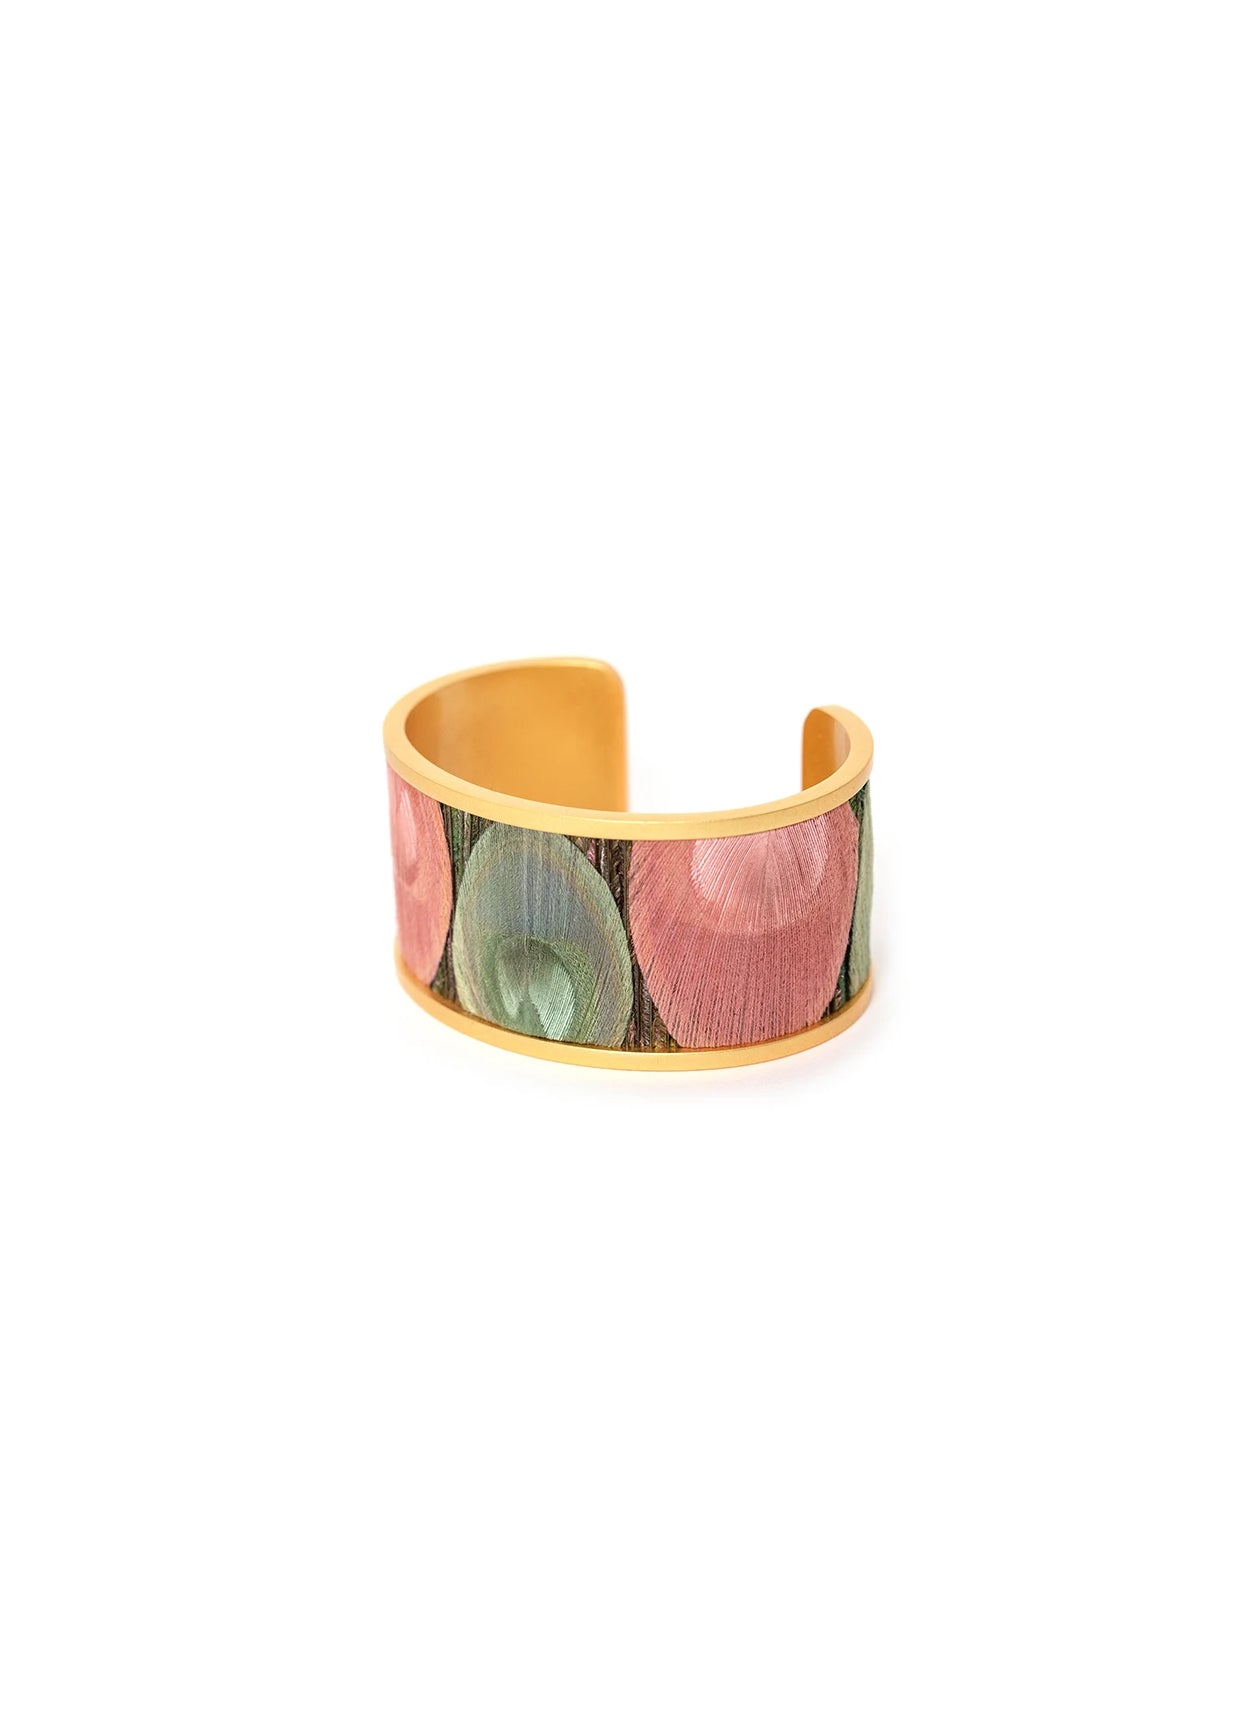 BIG BAND WIDE FEATHER CUFF